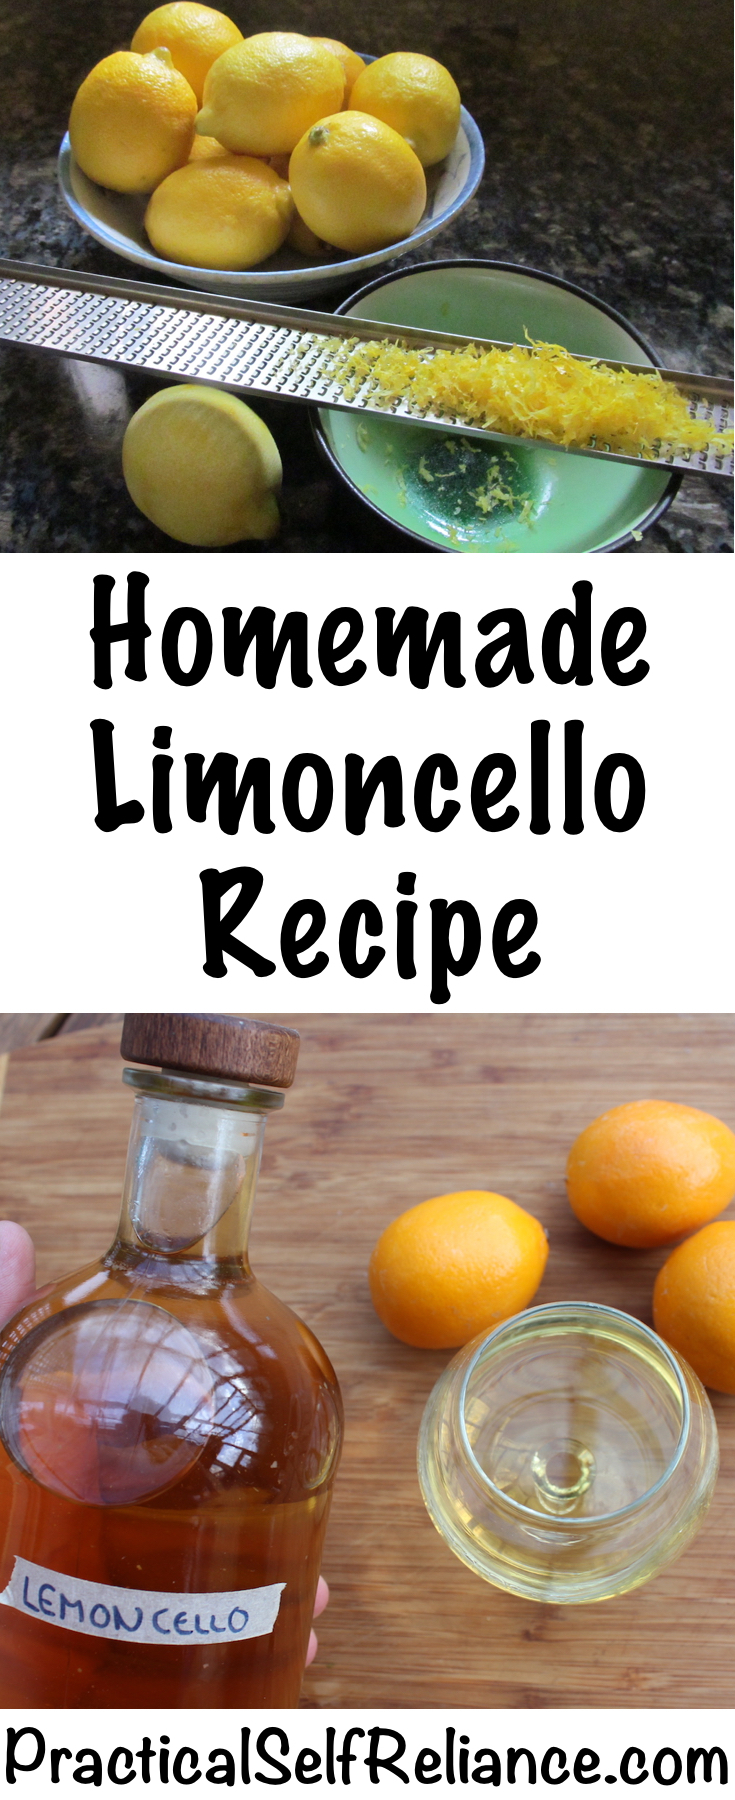 Homemade Limoncello Recipe #limoncello #cocktail #cocktailrecipe #cocktails #libation #easydrinks #beverages